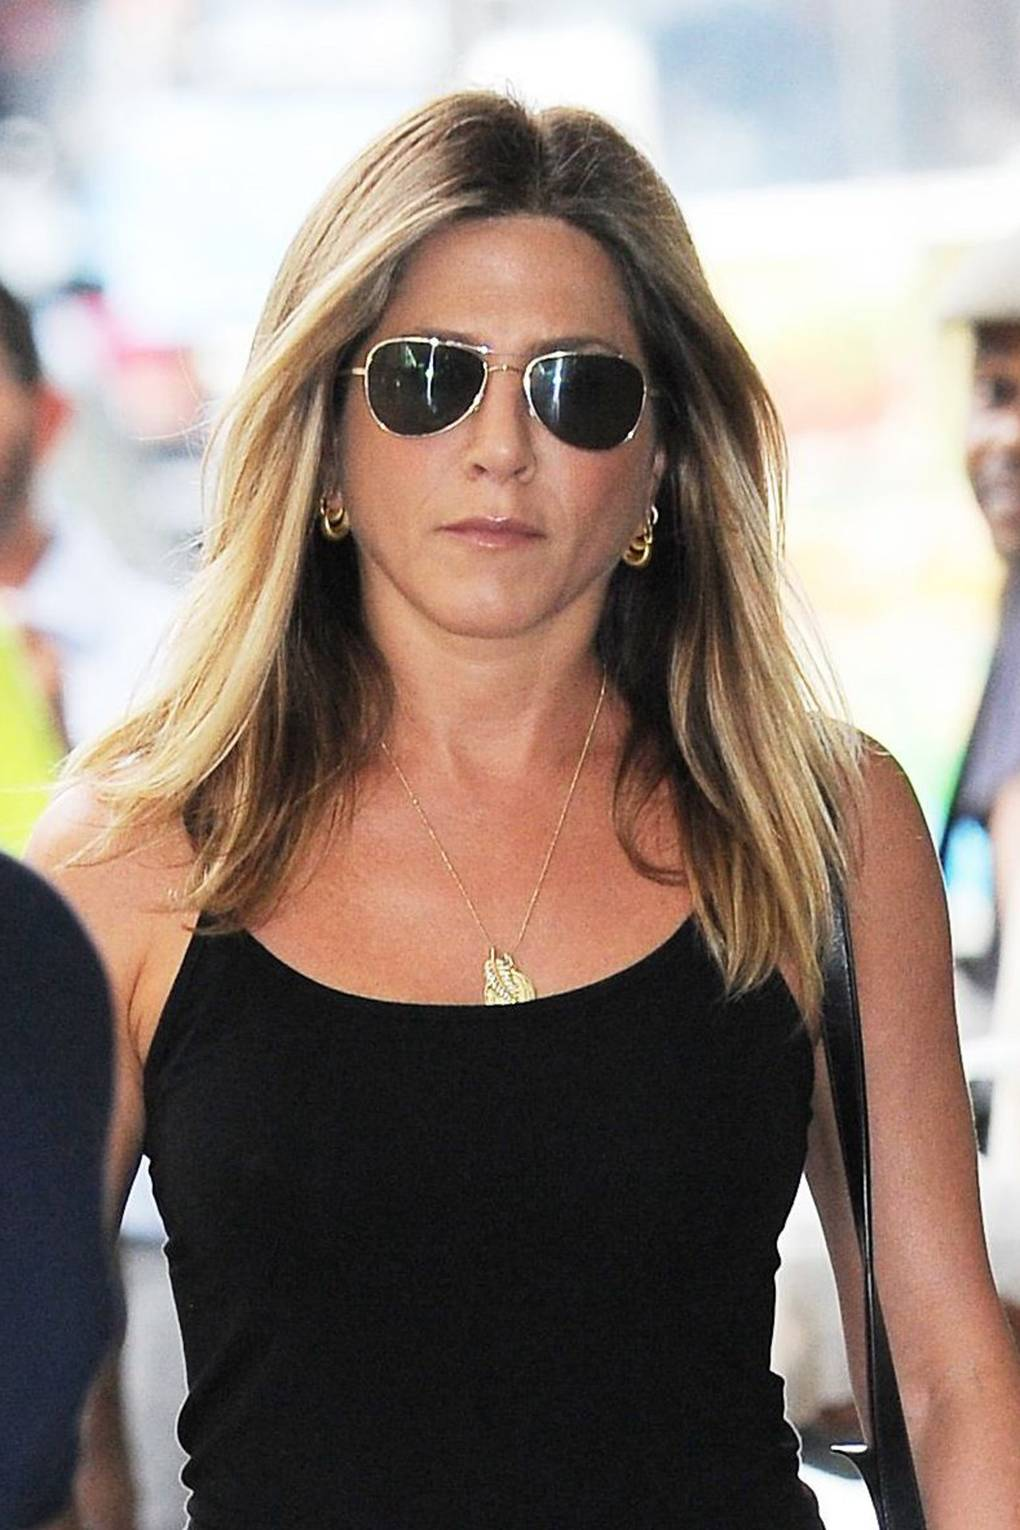 Jennifer Aniston talks about body-shaming in Vogue interview recommendations